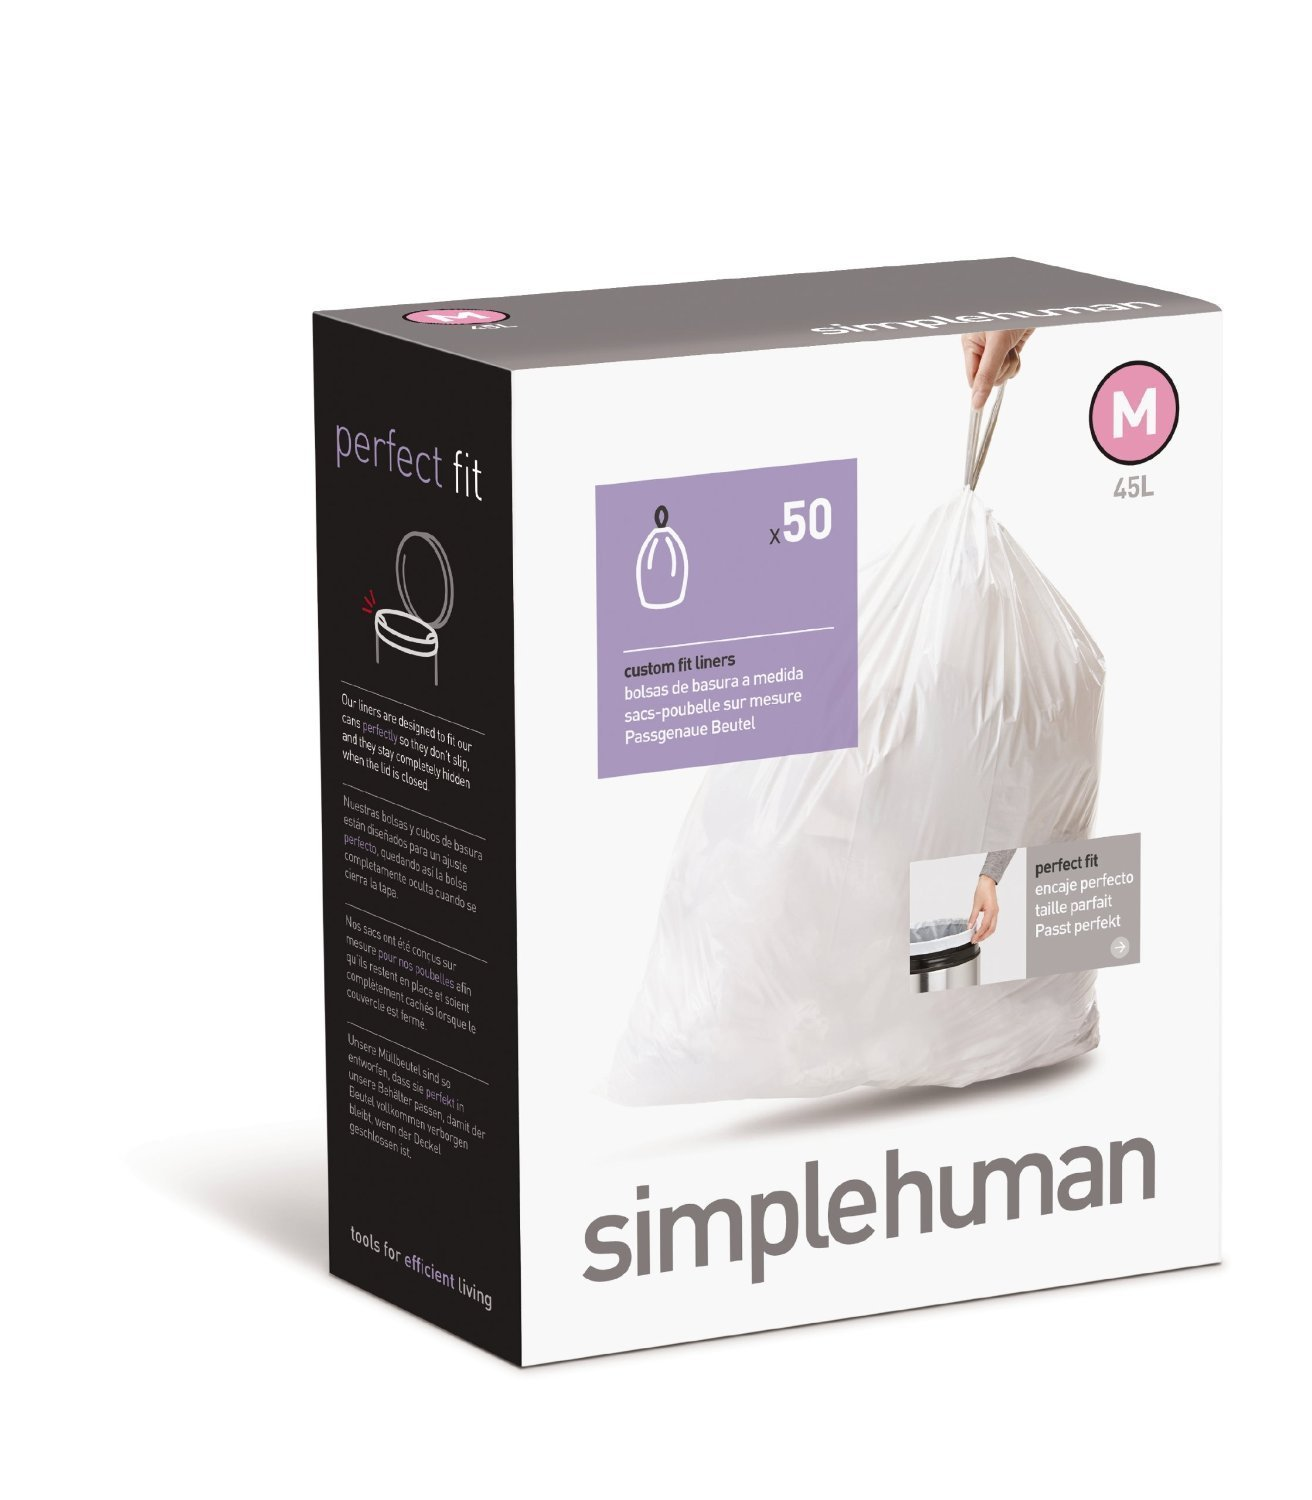 simplehuman - code M, custom fit can liners, 50 pack simple Human CW0179